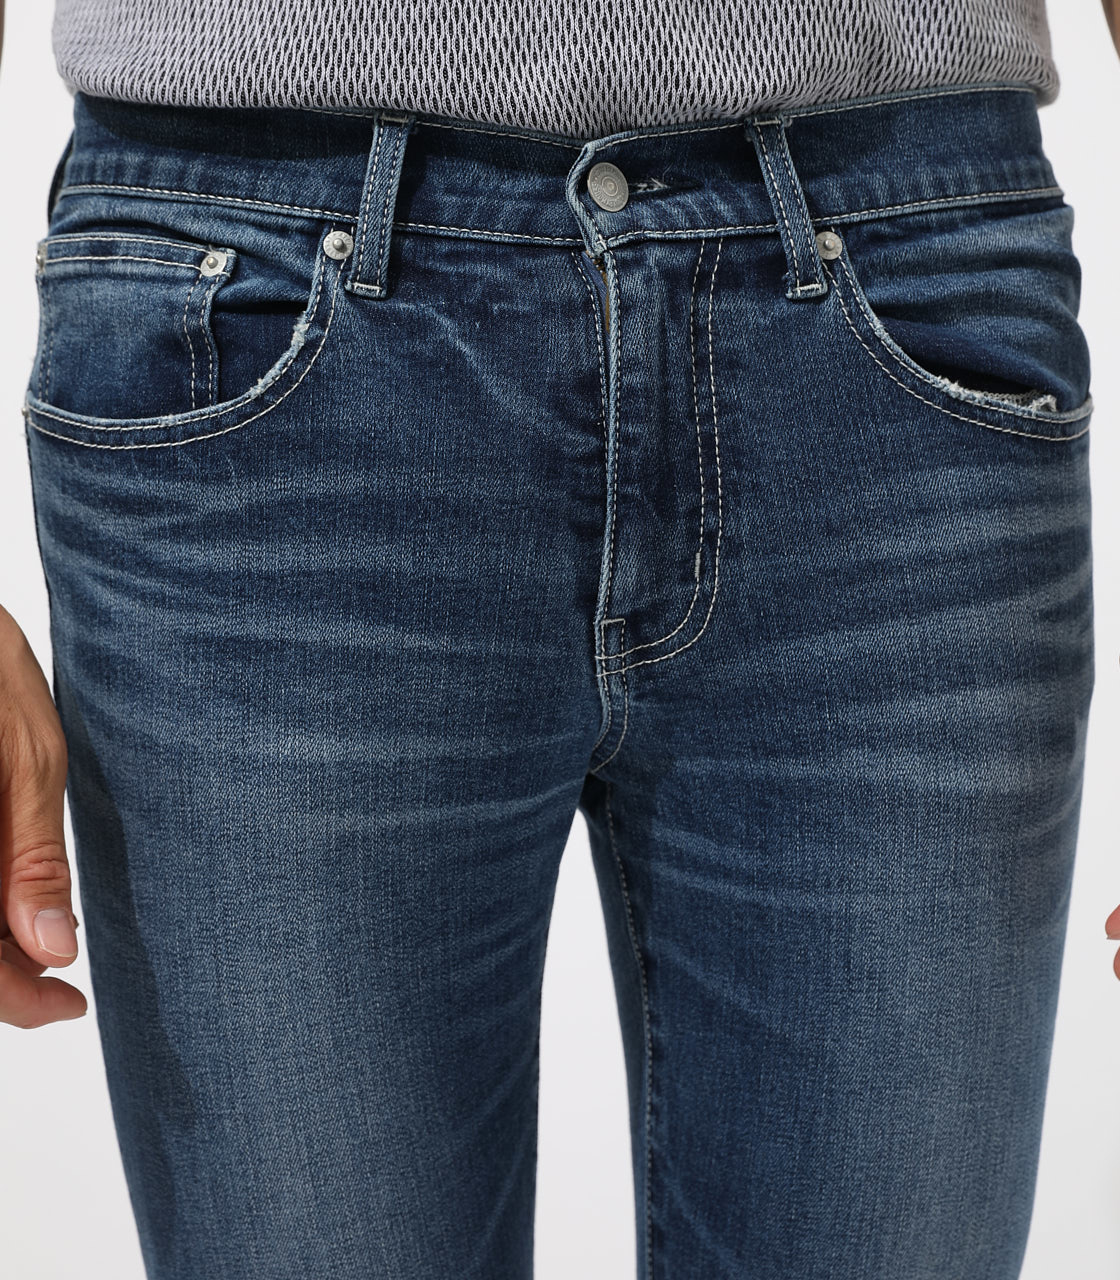 【AZUL BY MOUSSY】WHITE STITCH CRASH SKINNY 詳細画像 BLU 7